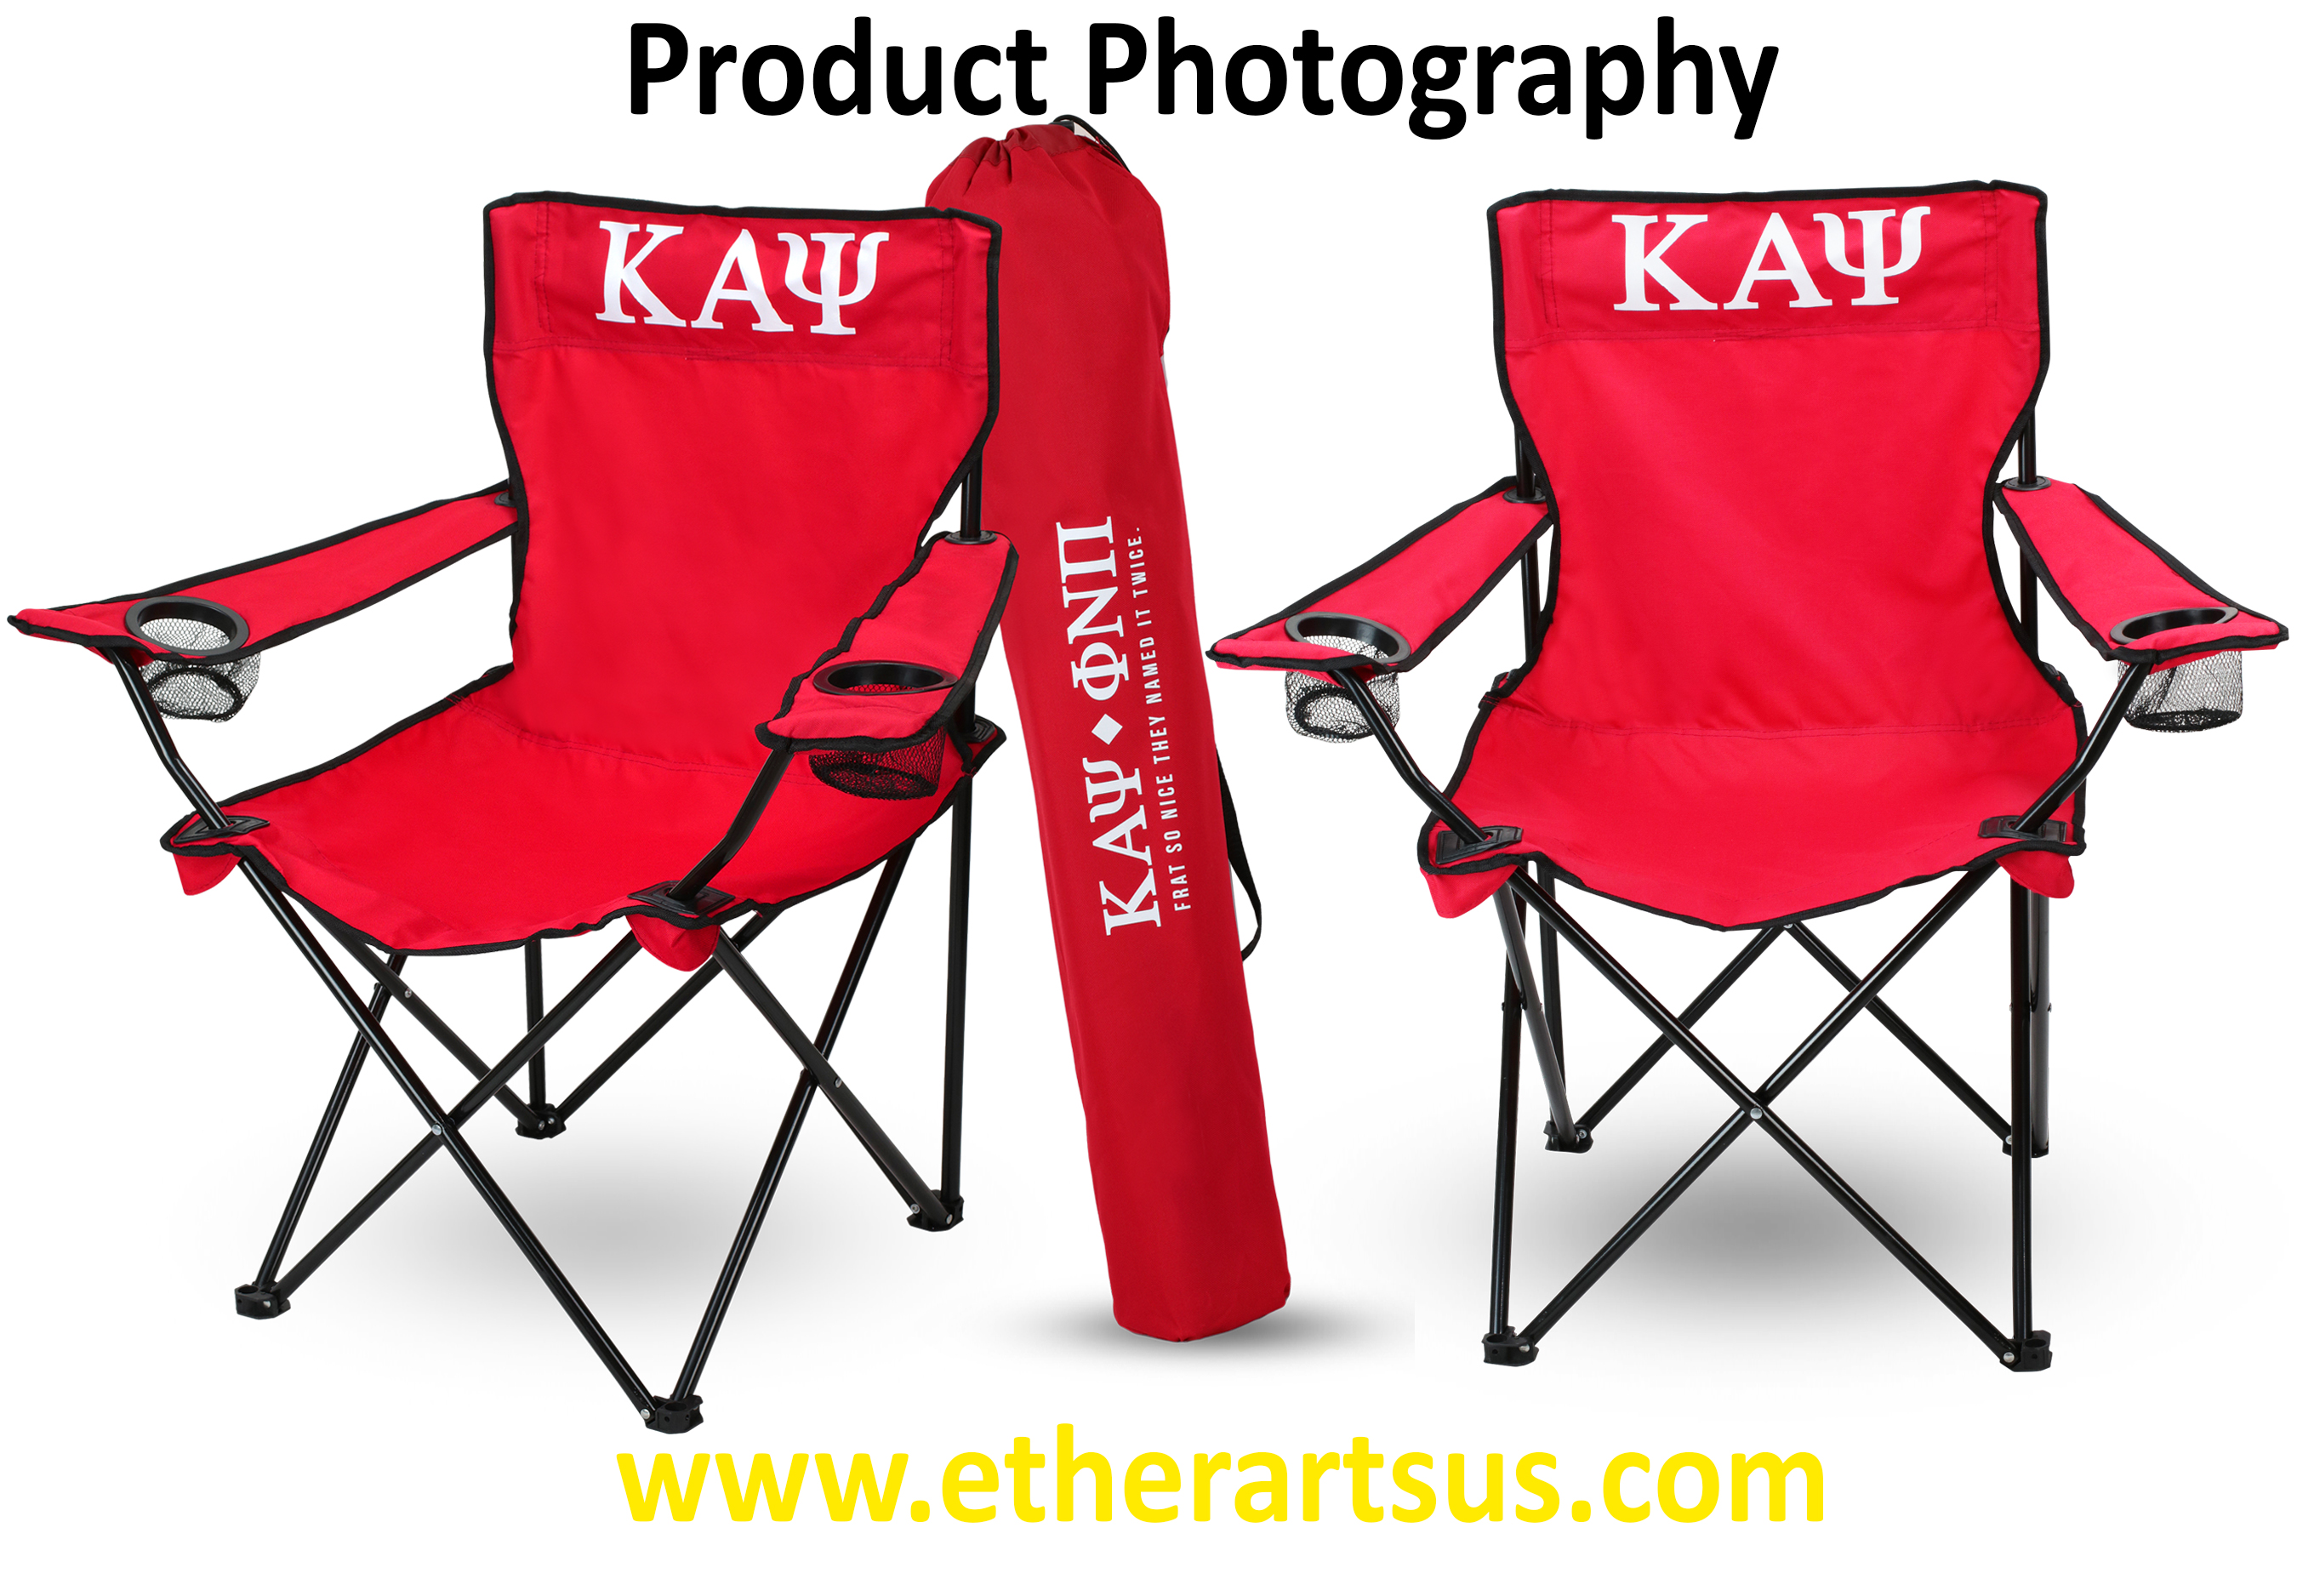 Product photography firm